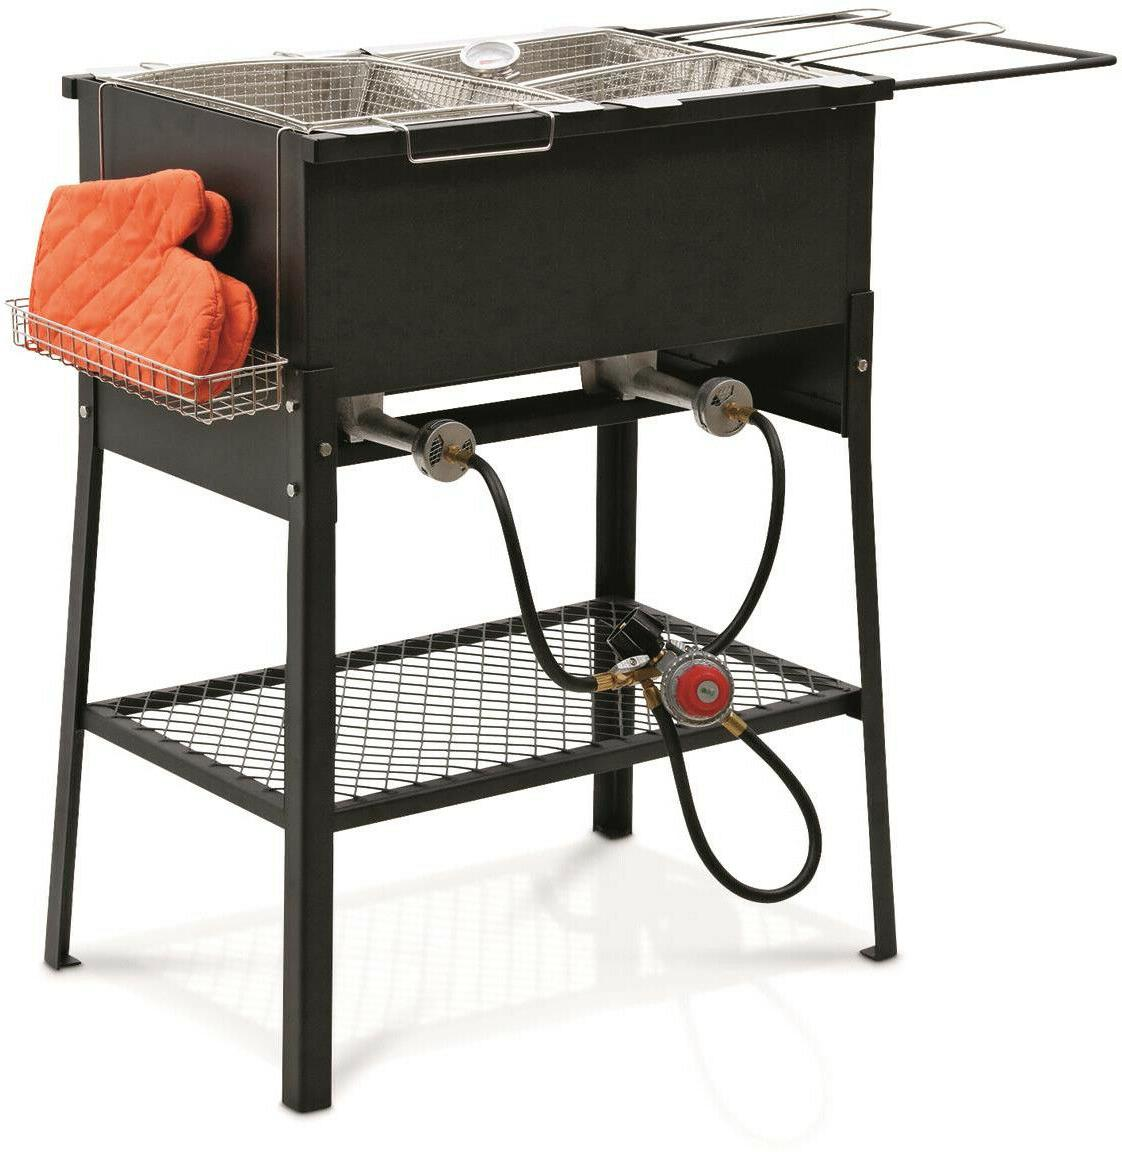 Portable 3 Fryer Camp Party 2 Propane Oil Fry